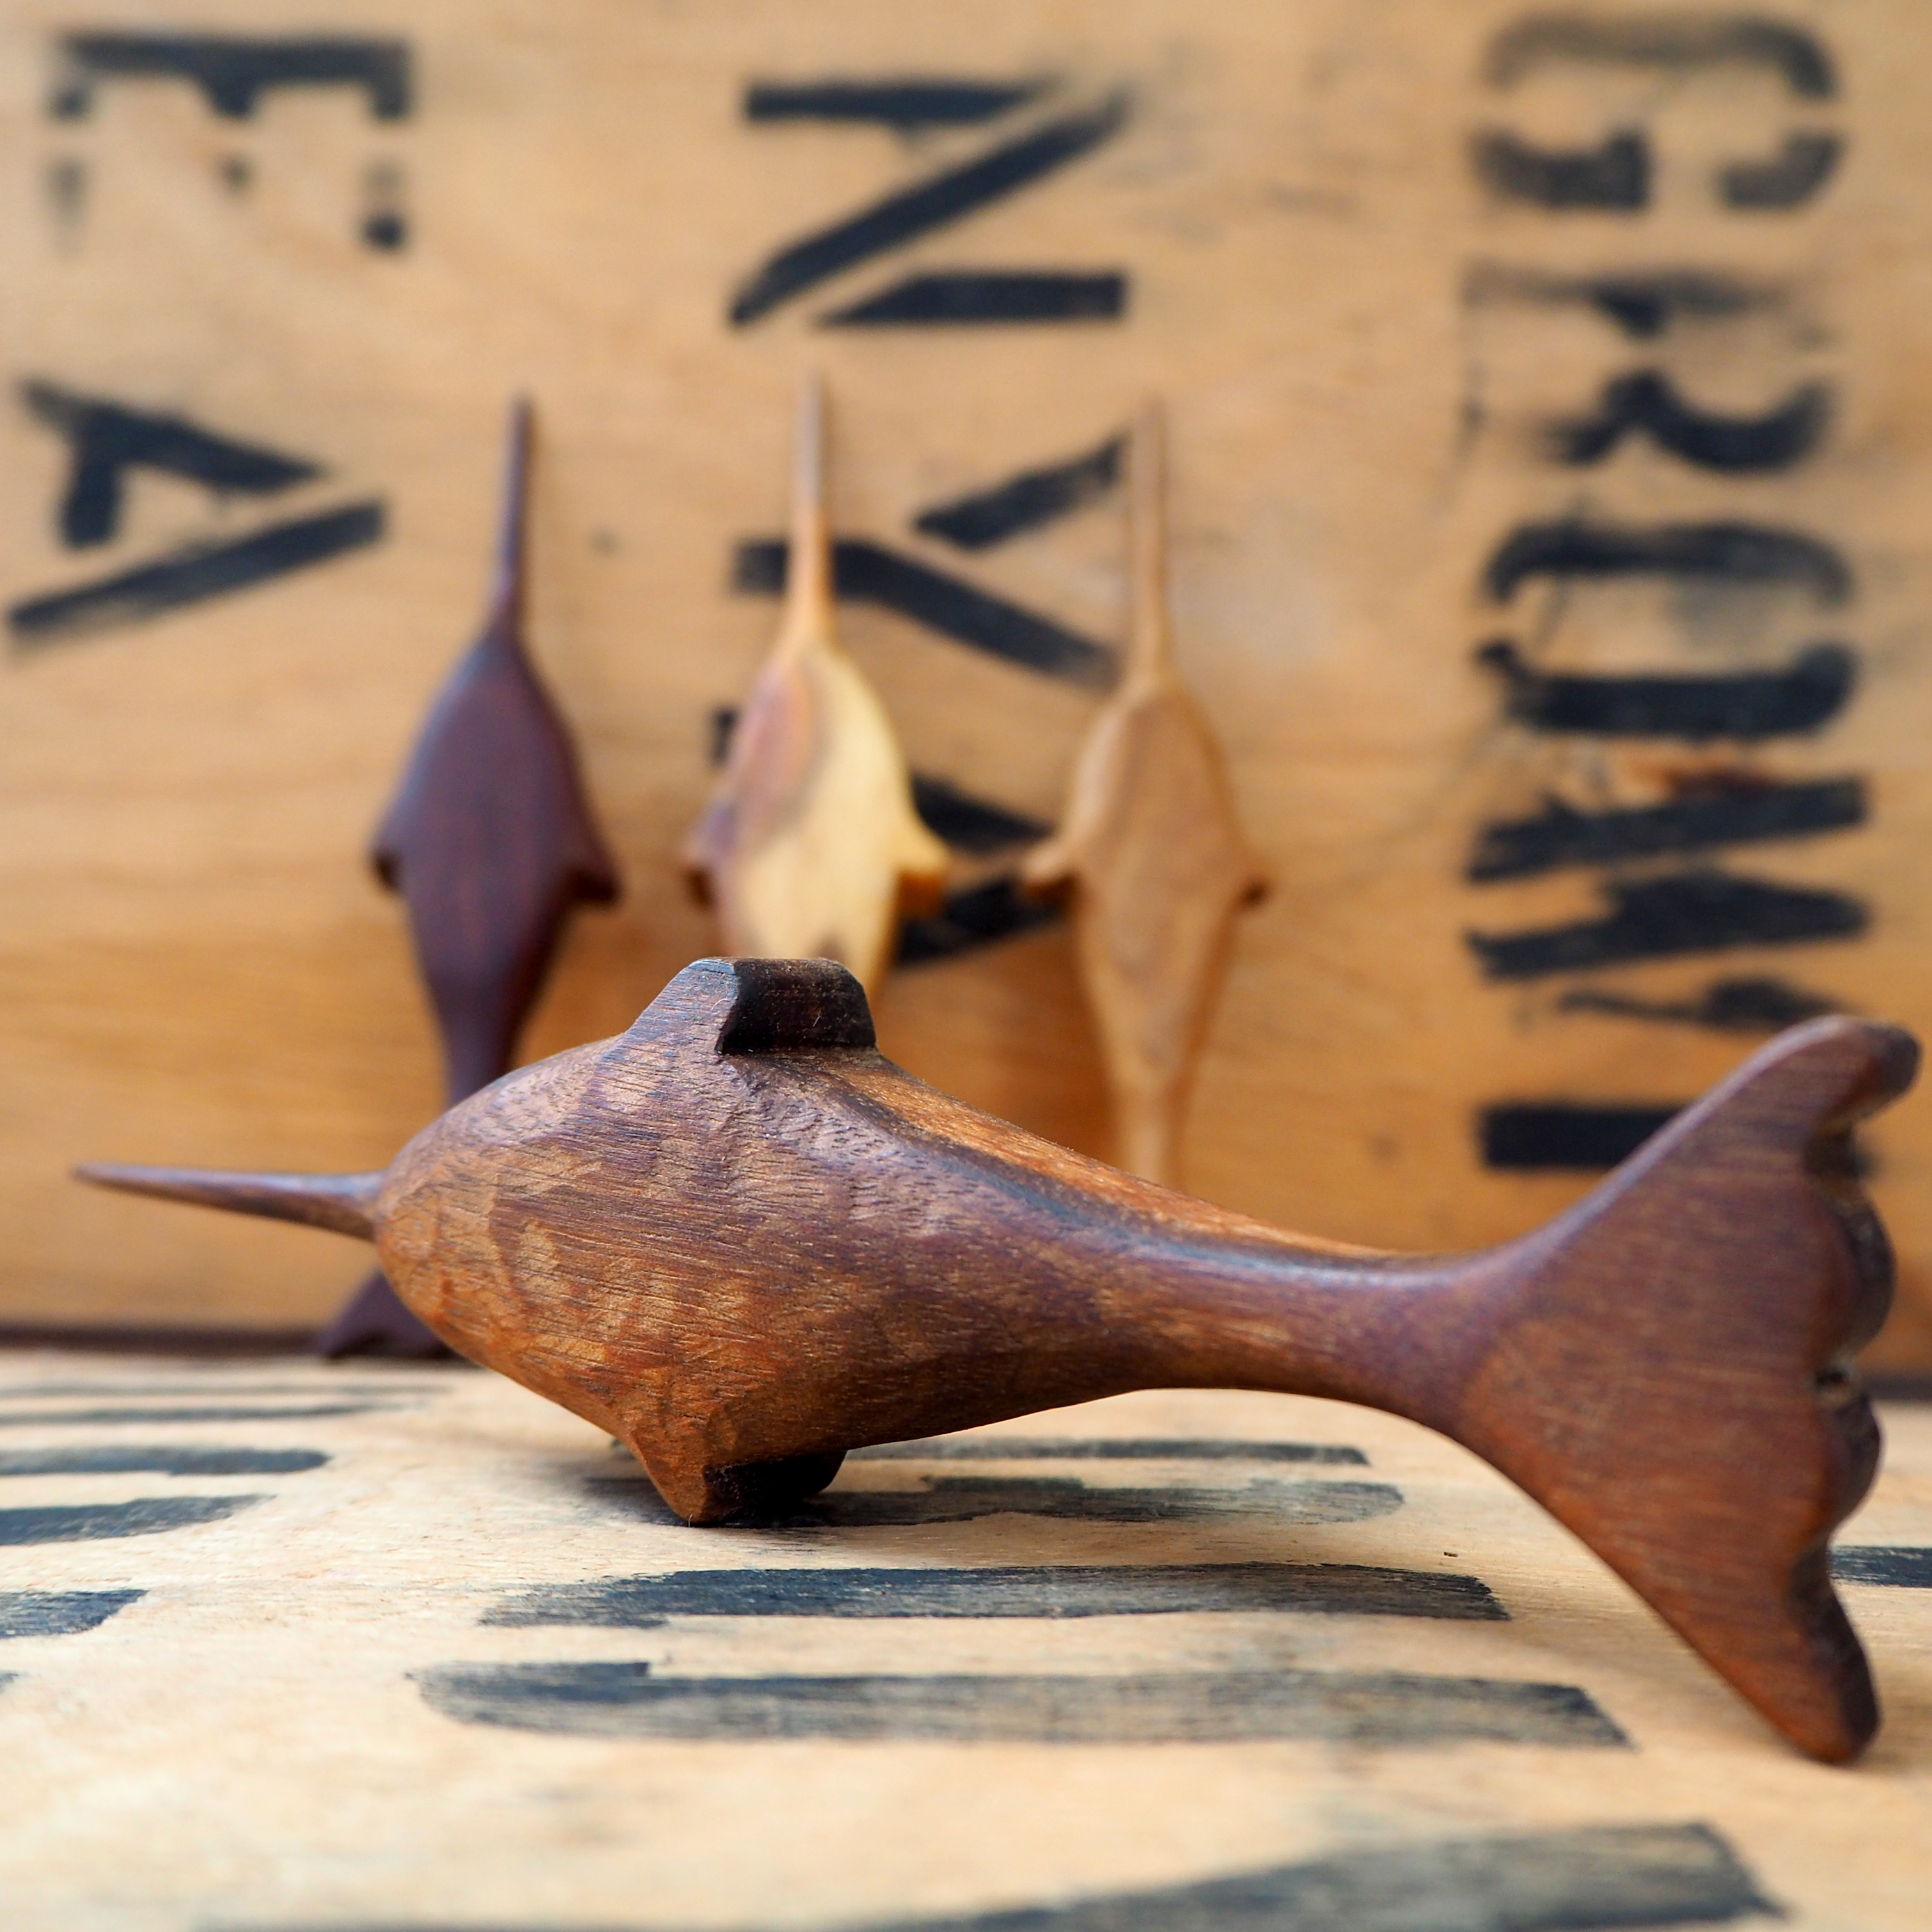 Tea Needle Narwhal by Rosie Brewer